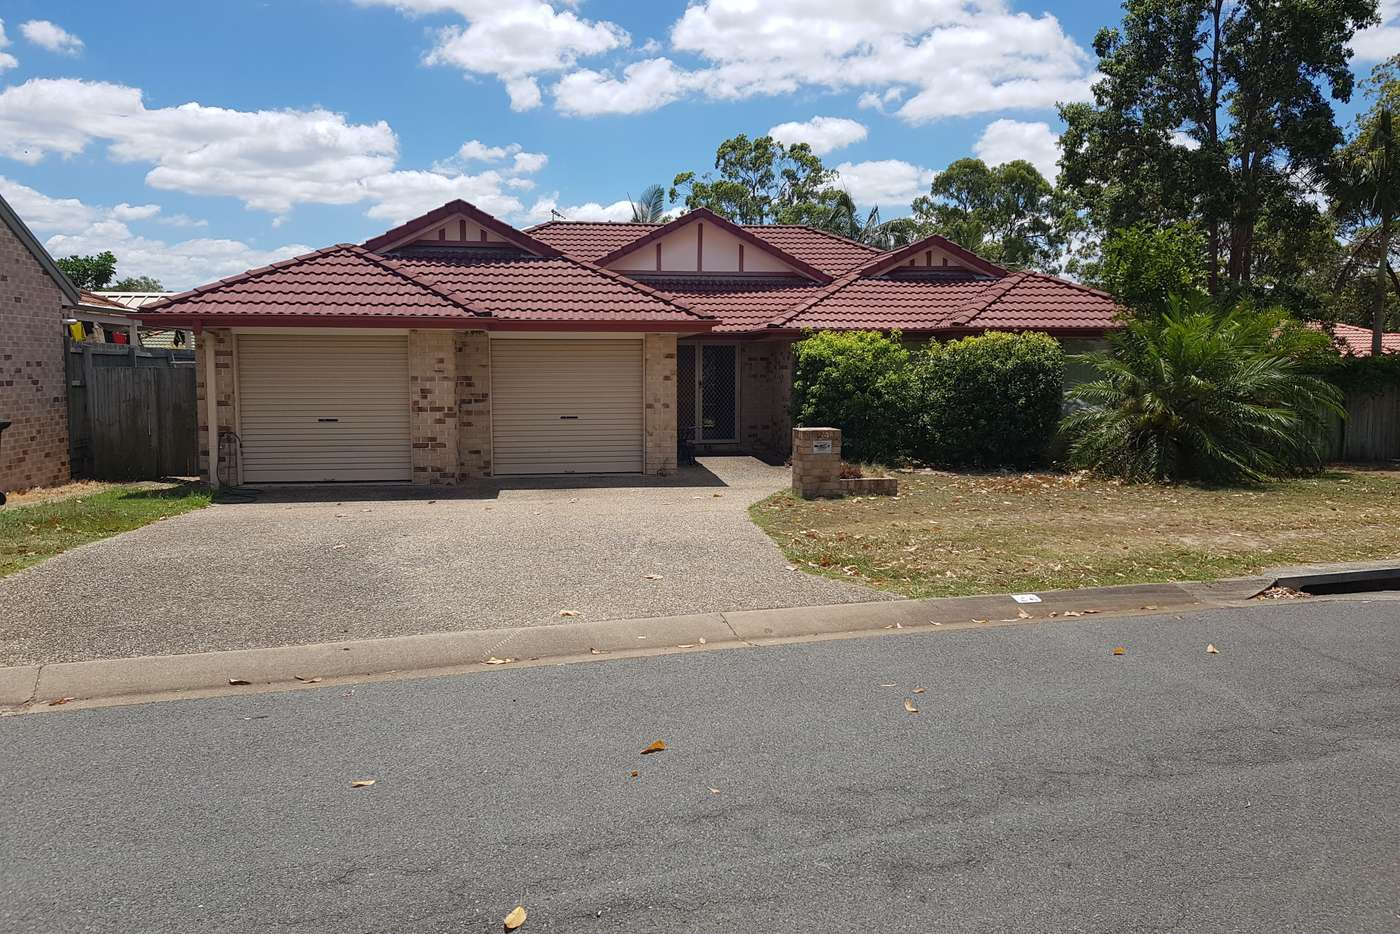 Main view of Homely house listing, 24 Bannister Place, Forest Lake QLD 4078